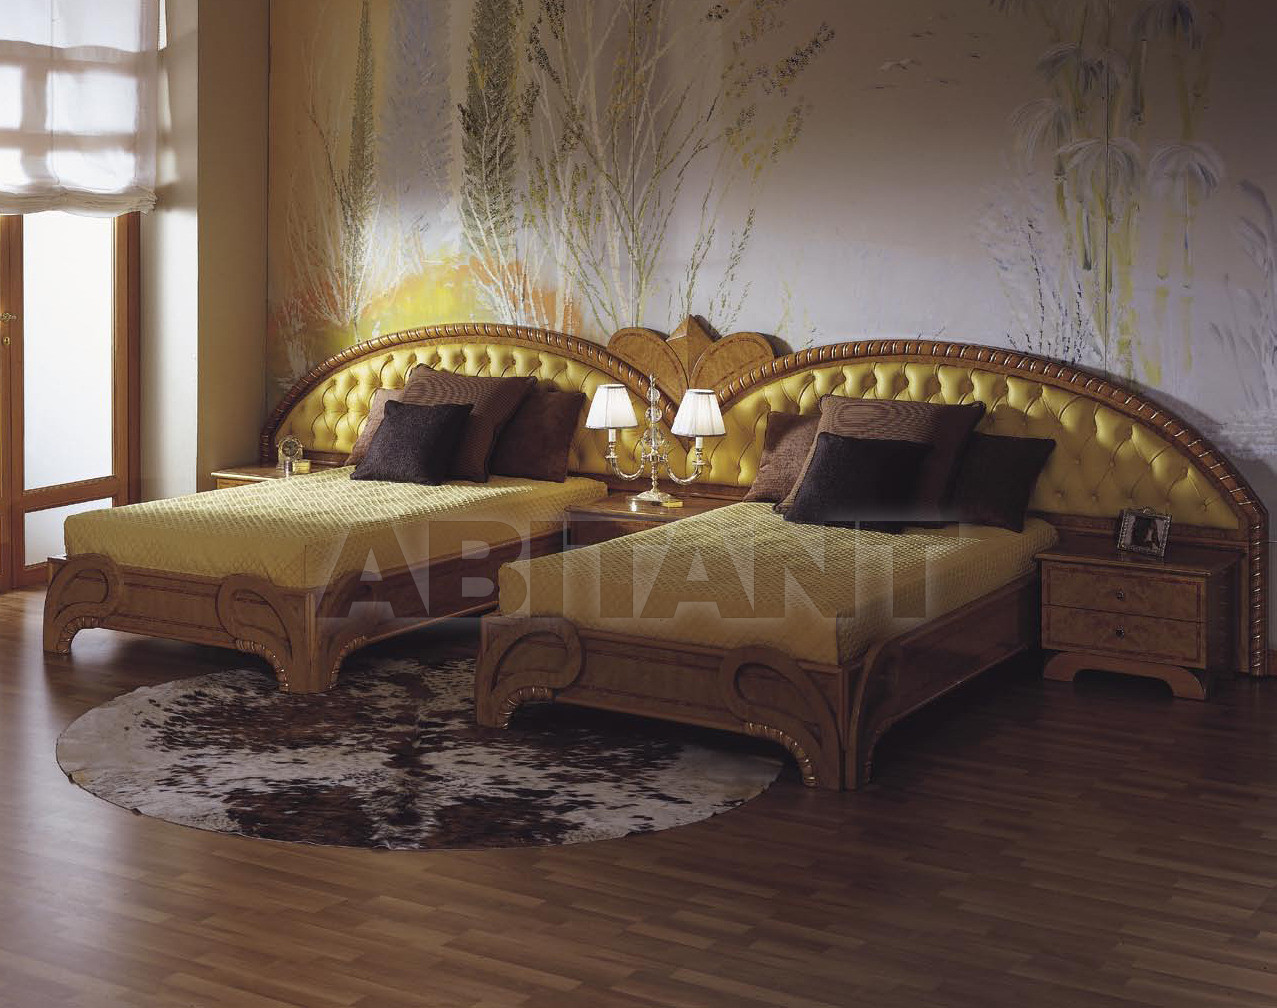 Buy Bed ZINNIA Asnaghi Interiors Bedroom Collection CR113